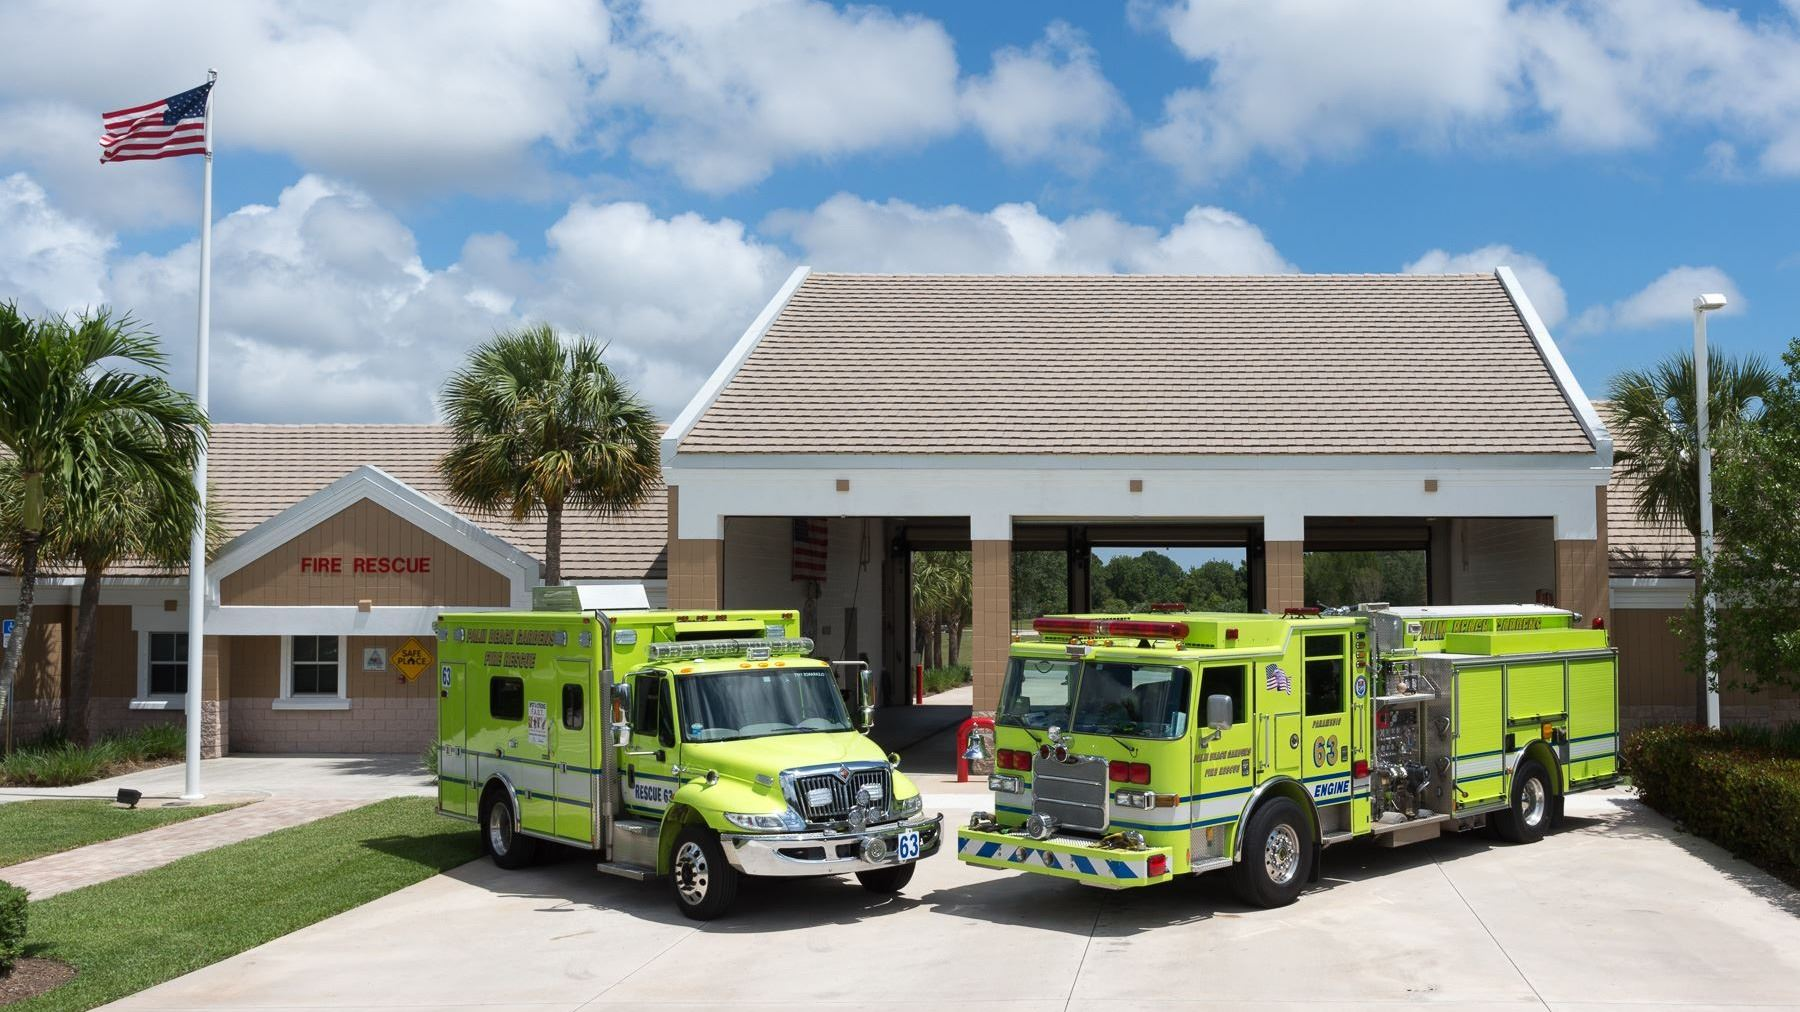 Fire station locations palm beach gardens fl official website for Fire in palm beach gardens today